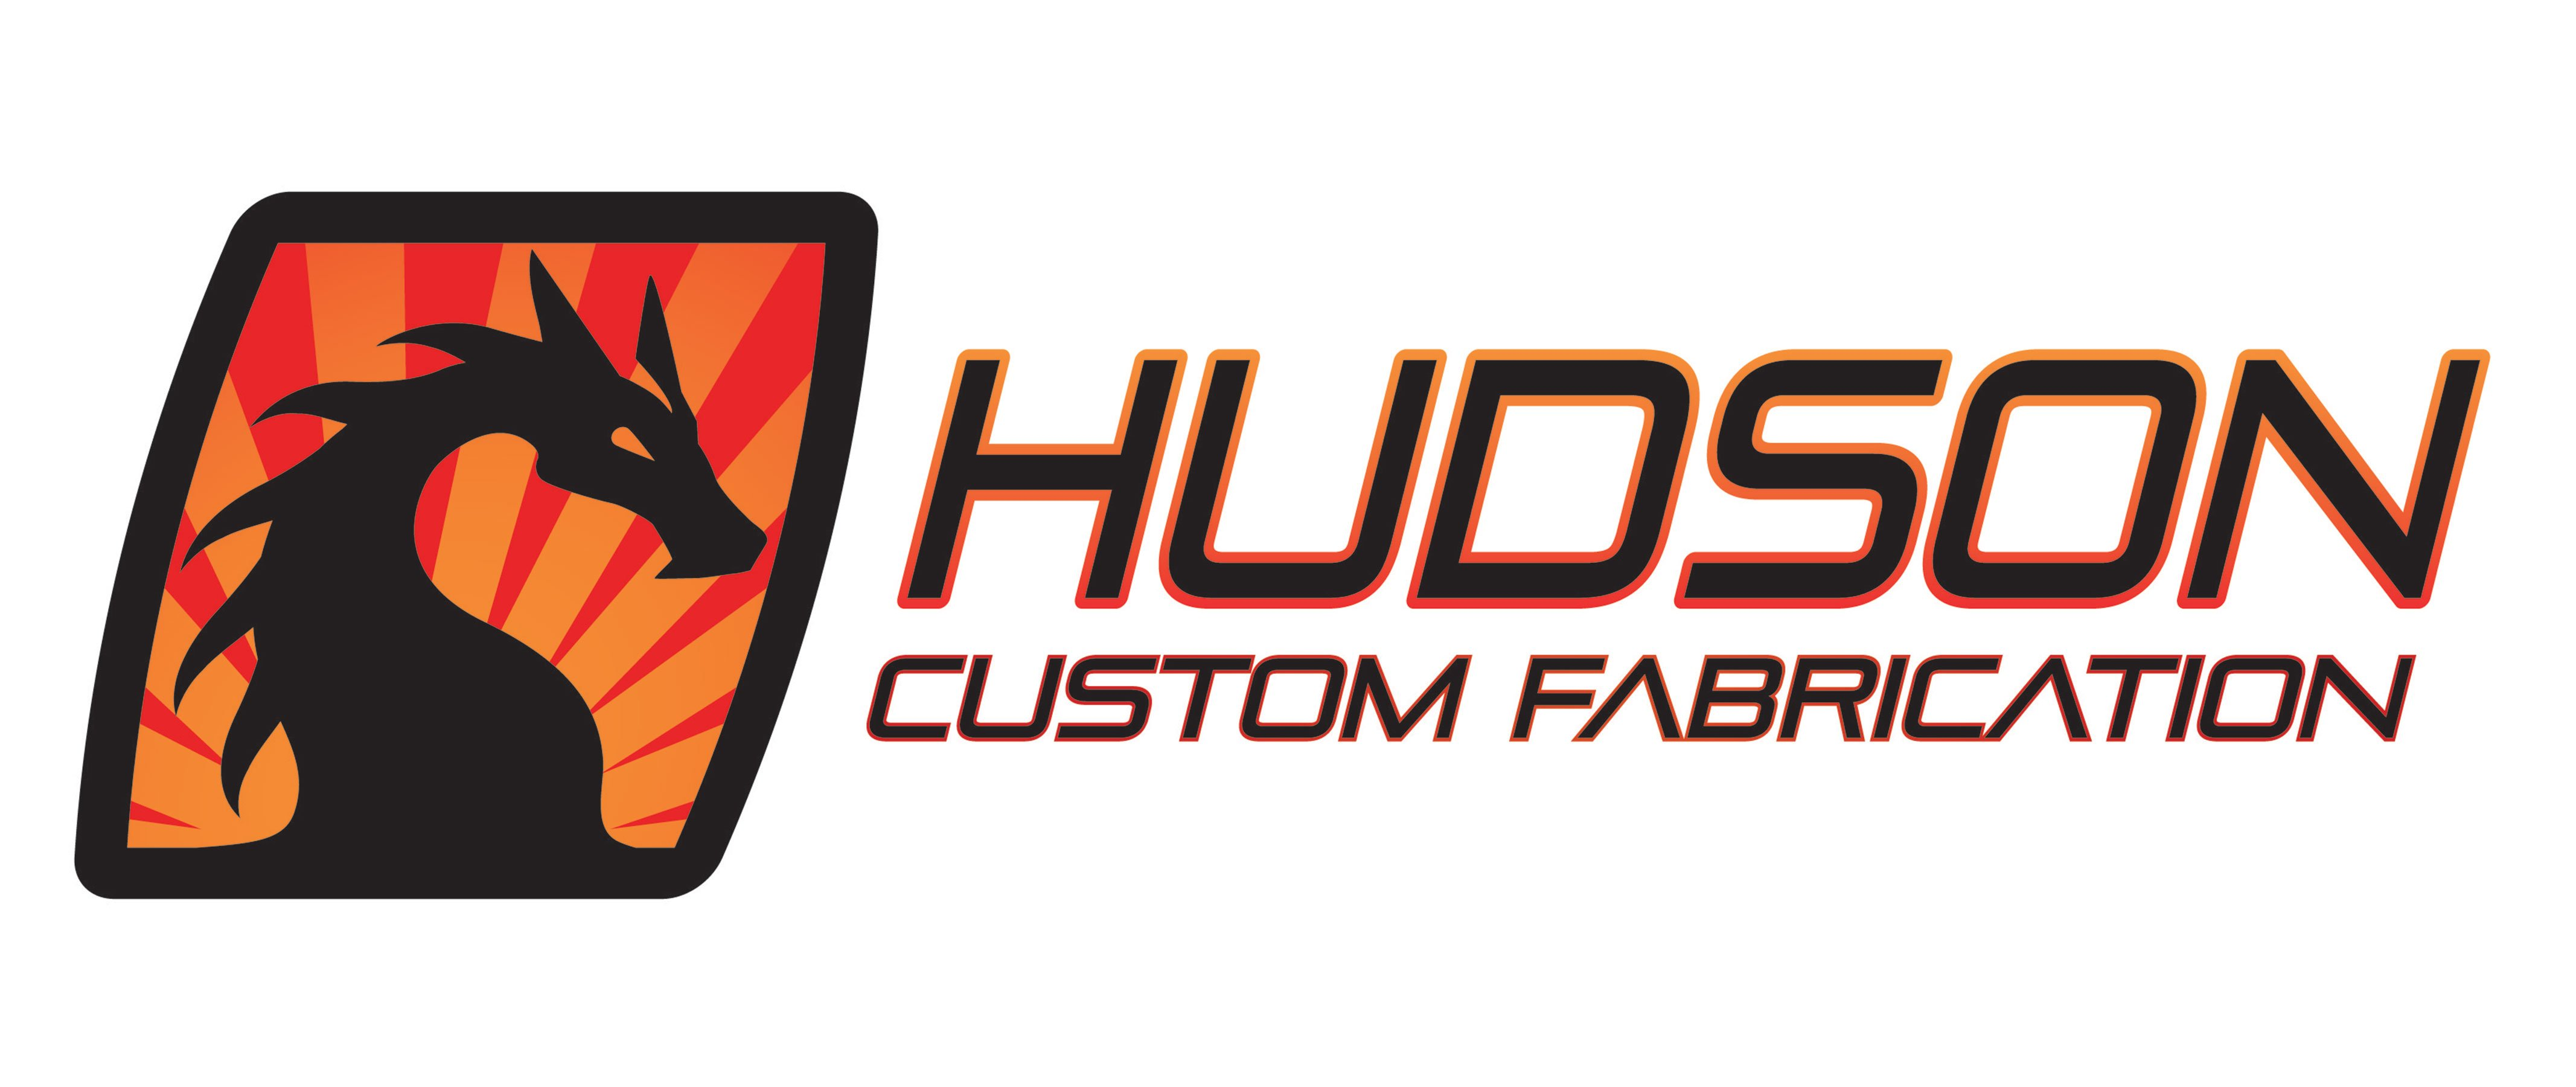 Hudson Custom Fabrication